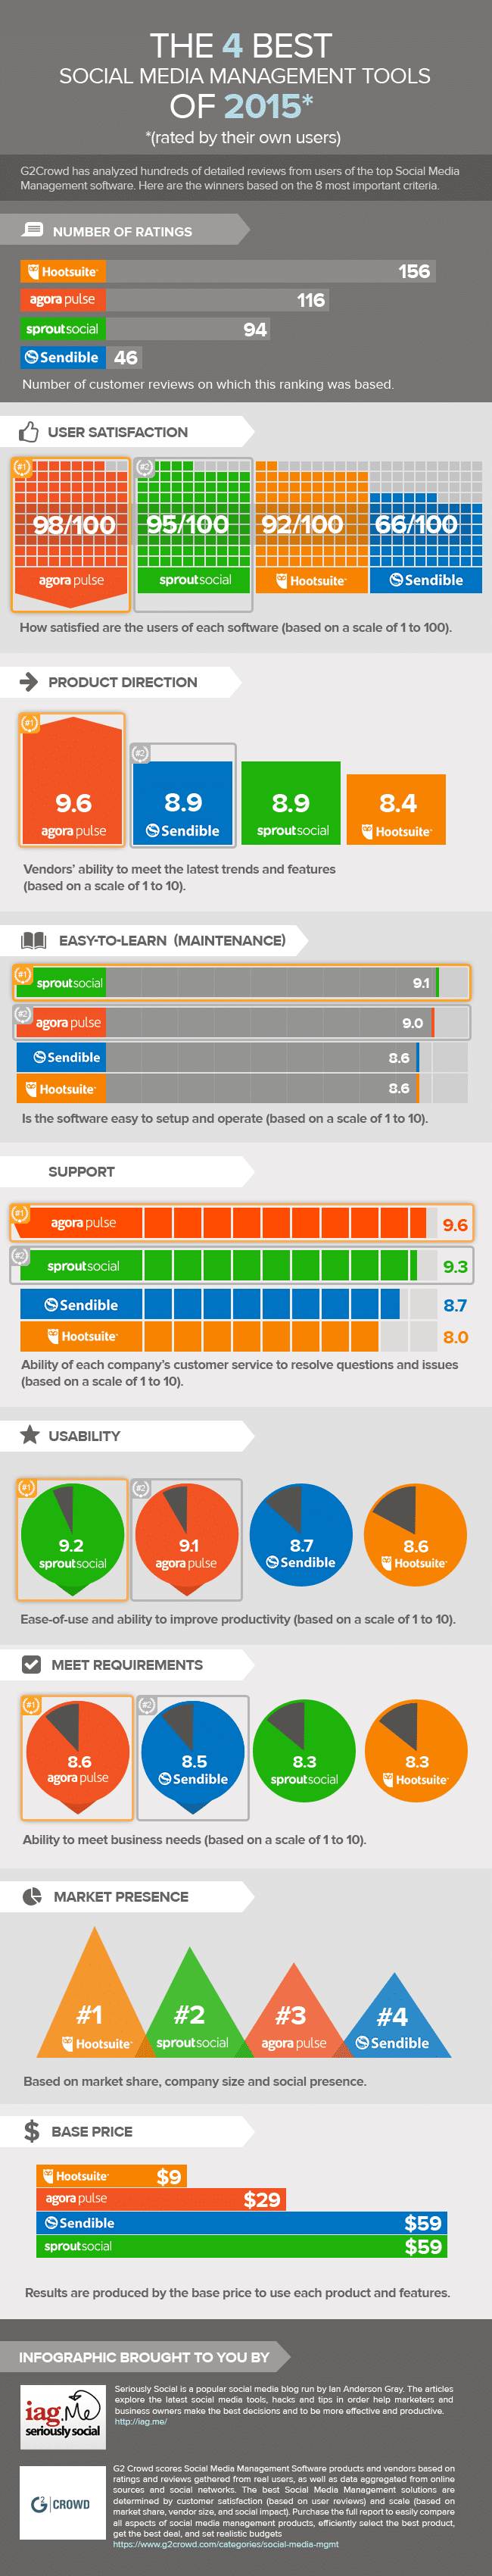 Infographic g2crowd iag